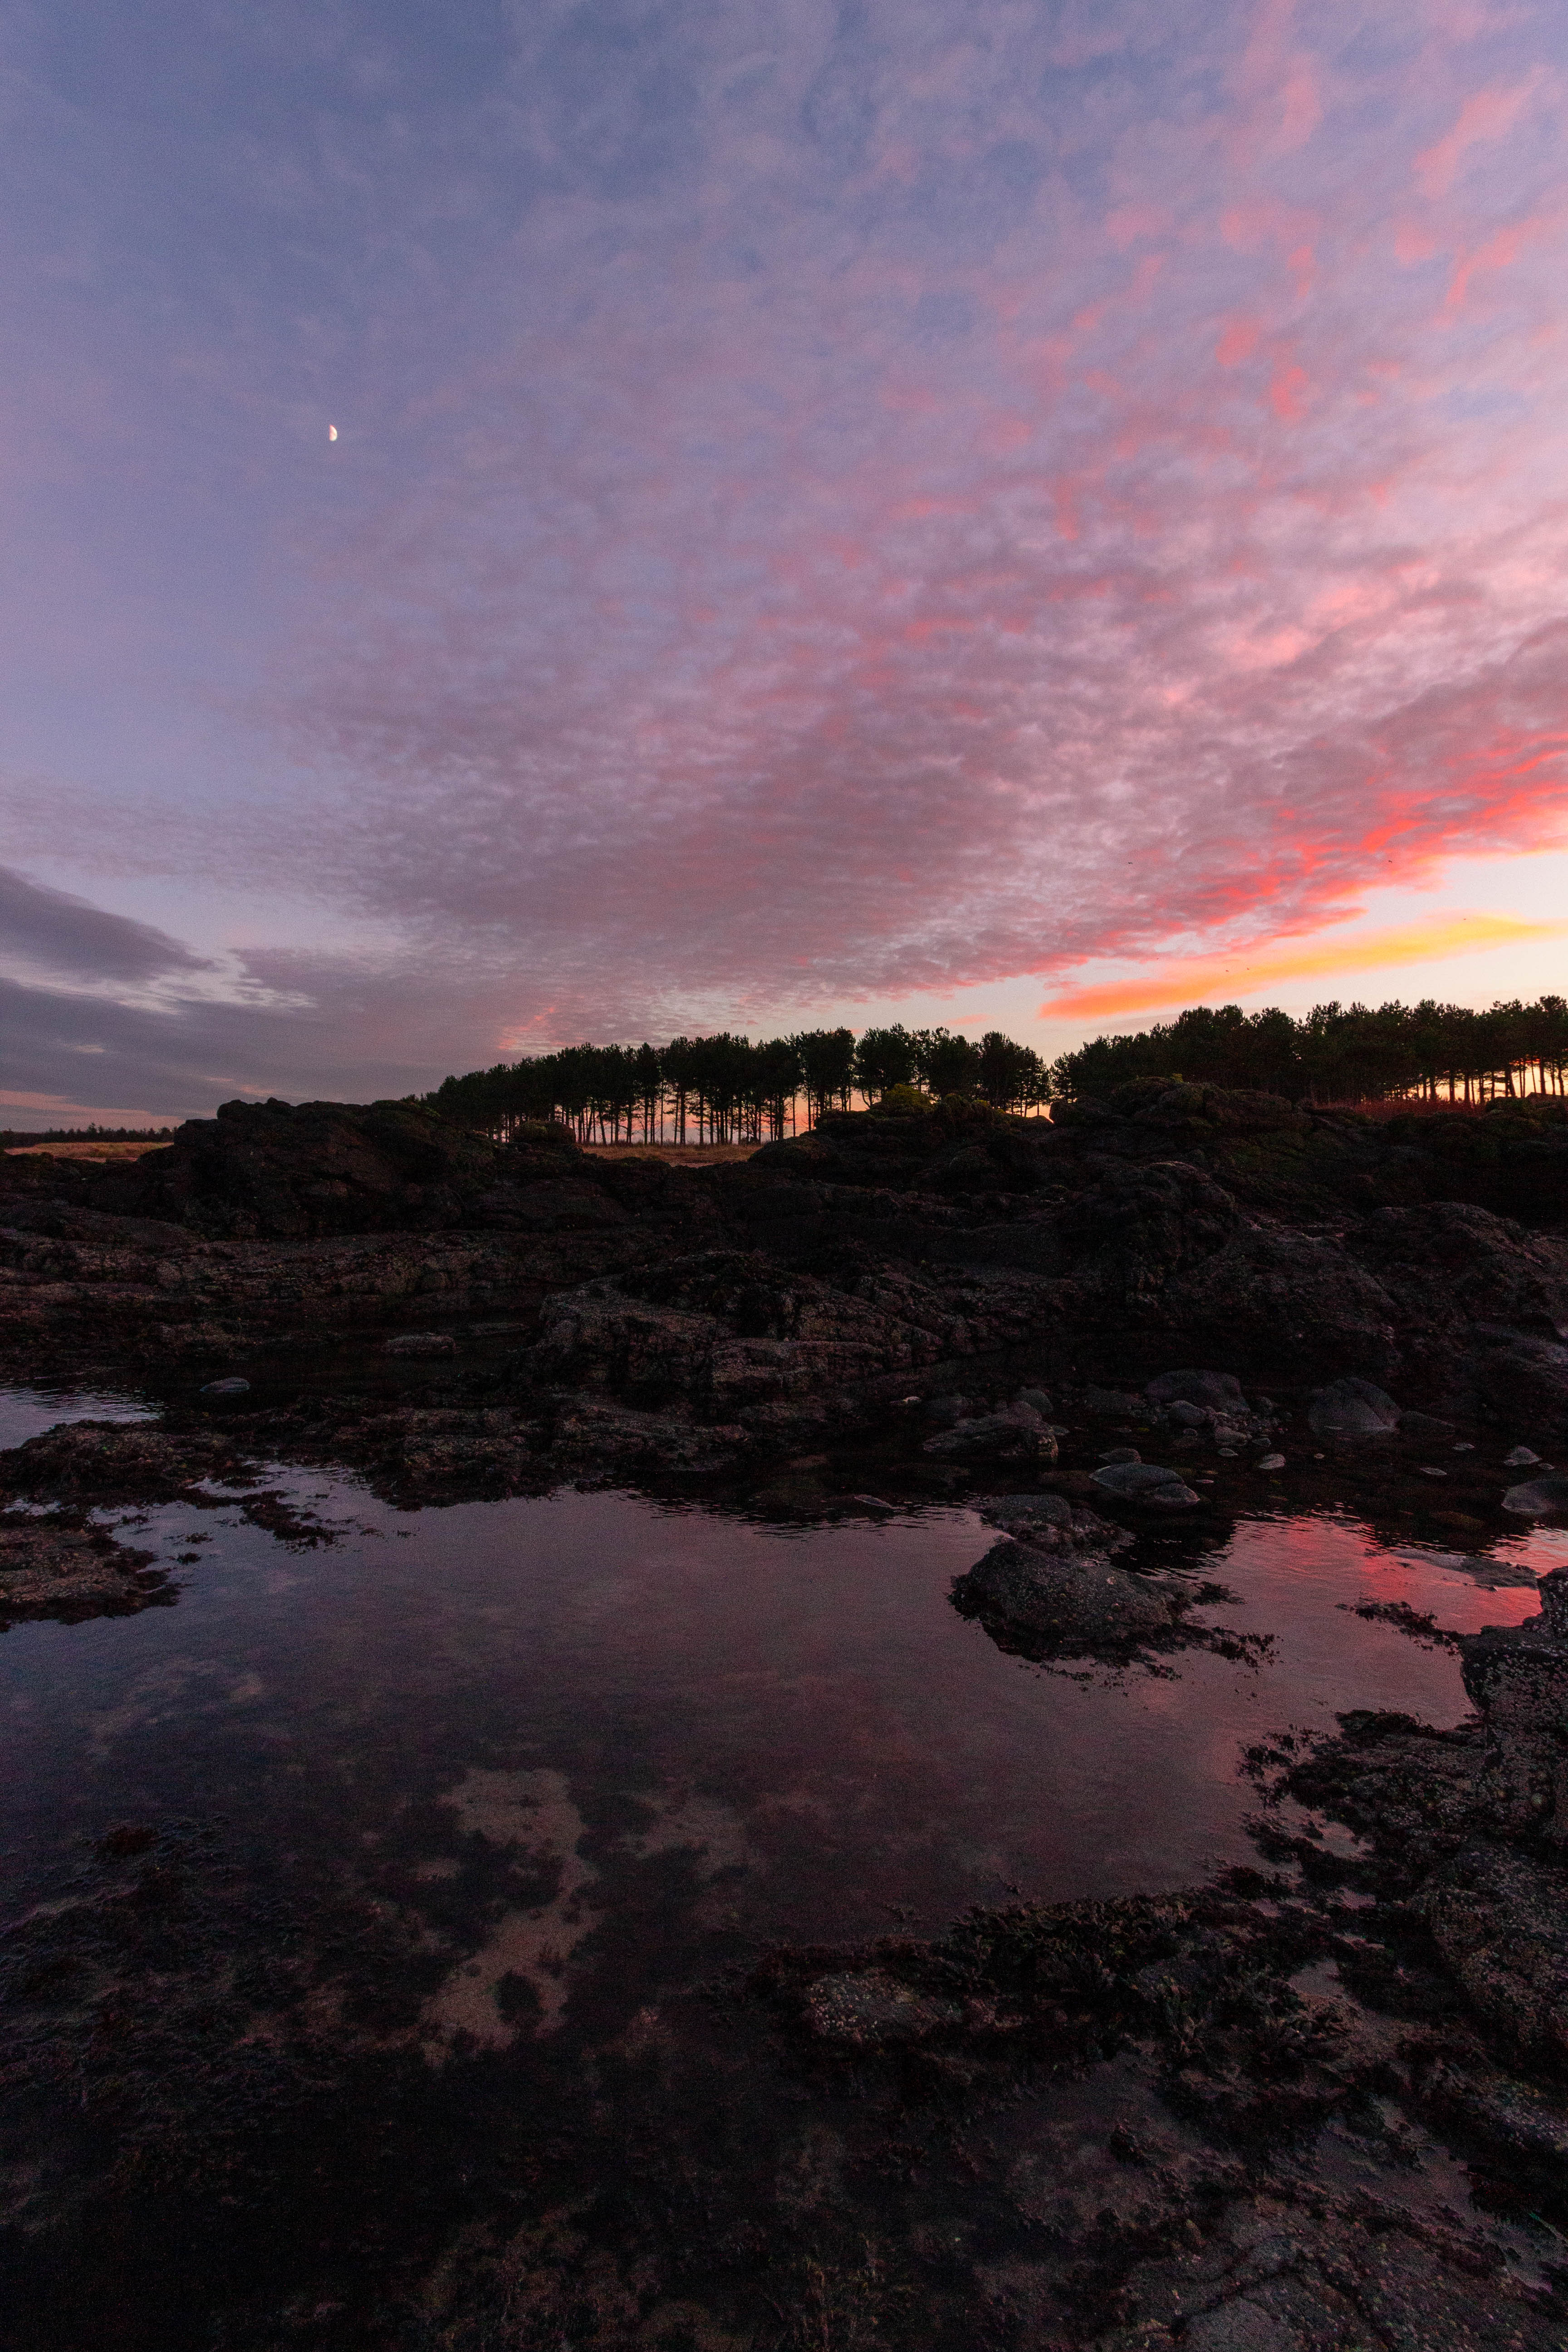 Reflection of a purple sunset in a rockpool at Yellowcraig Beach